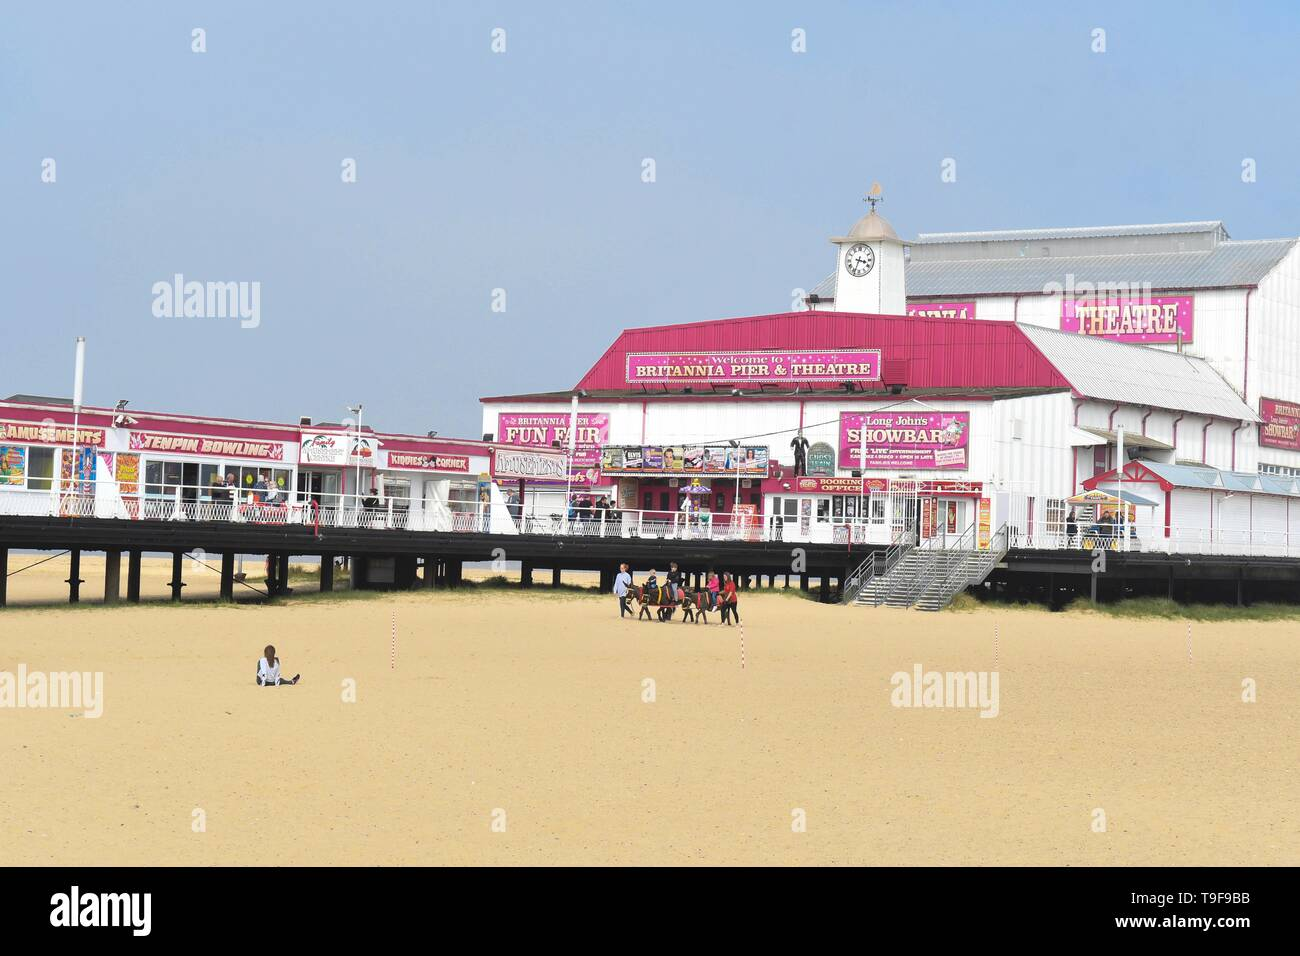 Great Yarmouth, Norfolk, England - 18 May 2019: uk weather - as the sun briefly breaks through the mist, Great Yarmouth looks as pretty as a postcard as children enjoy donkey rides on the golden sands Credit: Kay Roxby/Alamy Live News Stock Photo